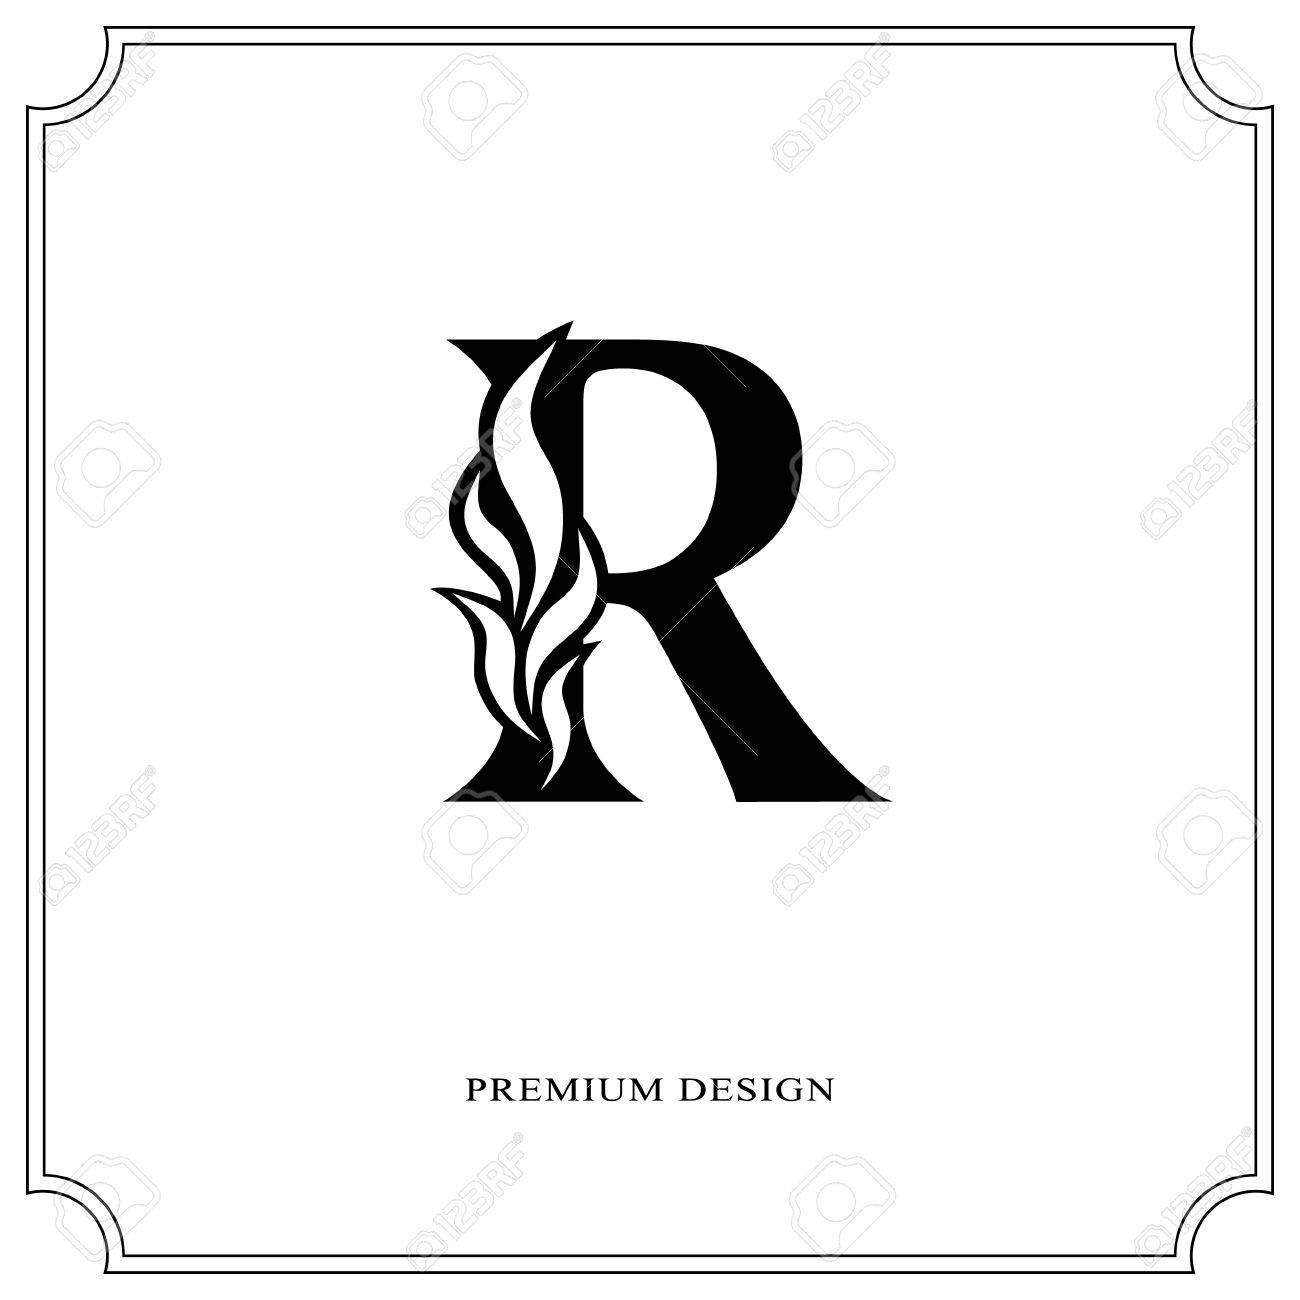 Elegant Letter R Graceful Royal Style Calligraphic Beautiful